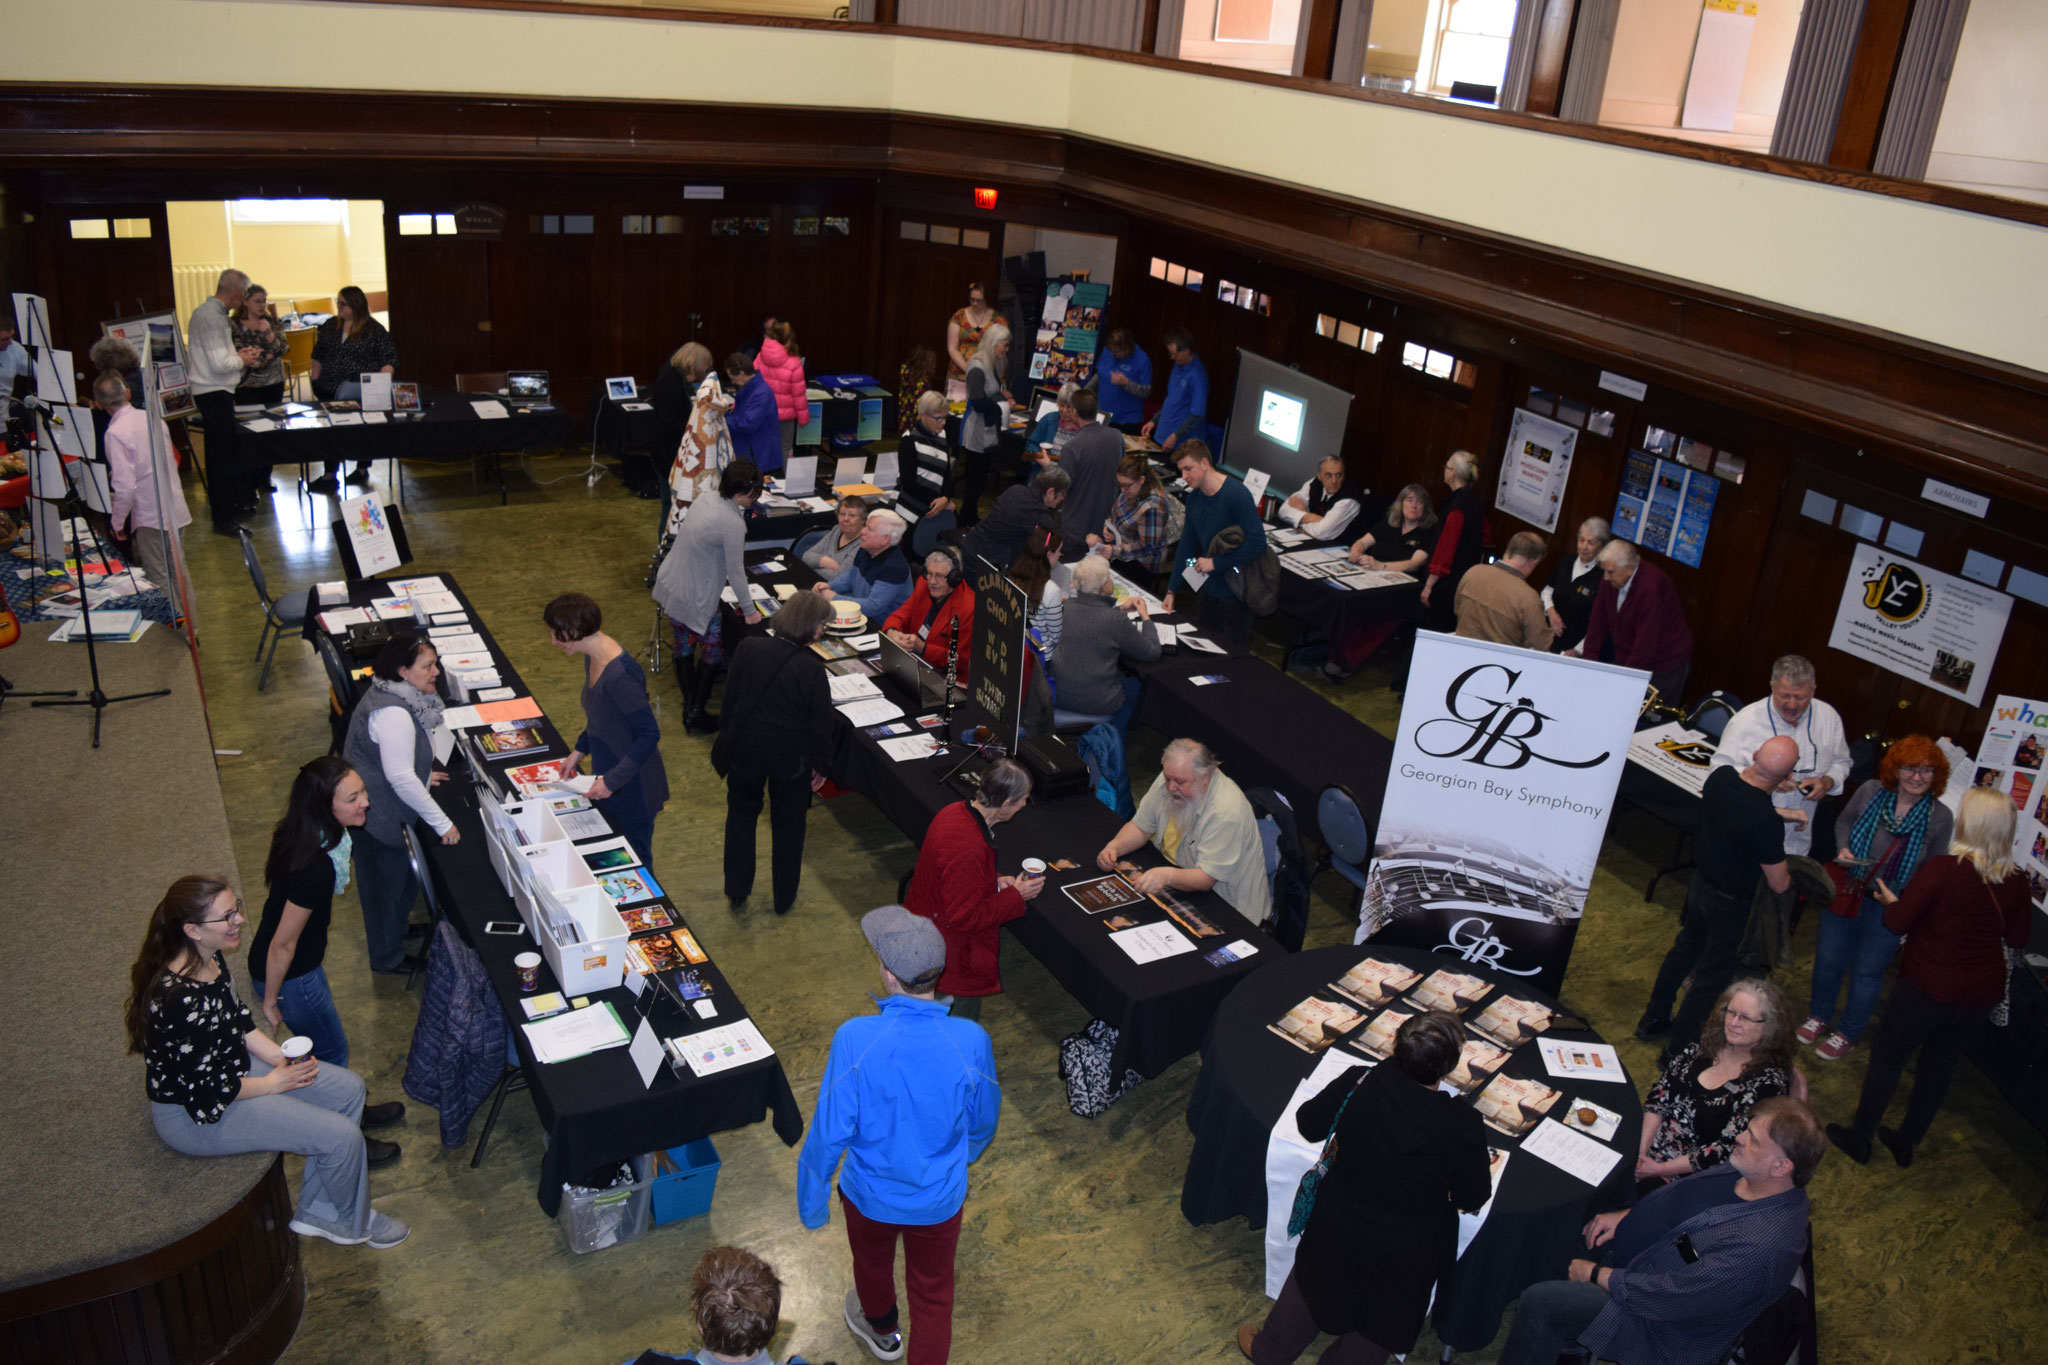 Great overhead shot of the studio space at the Harmony Centre during the Fair.